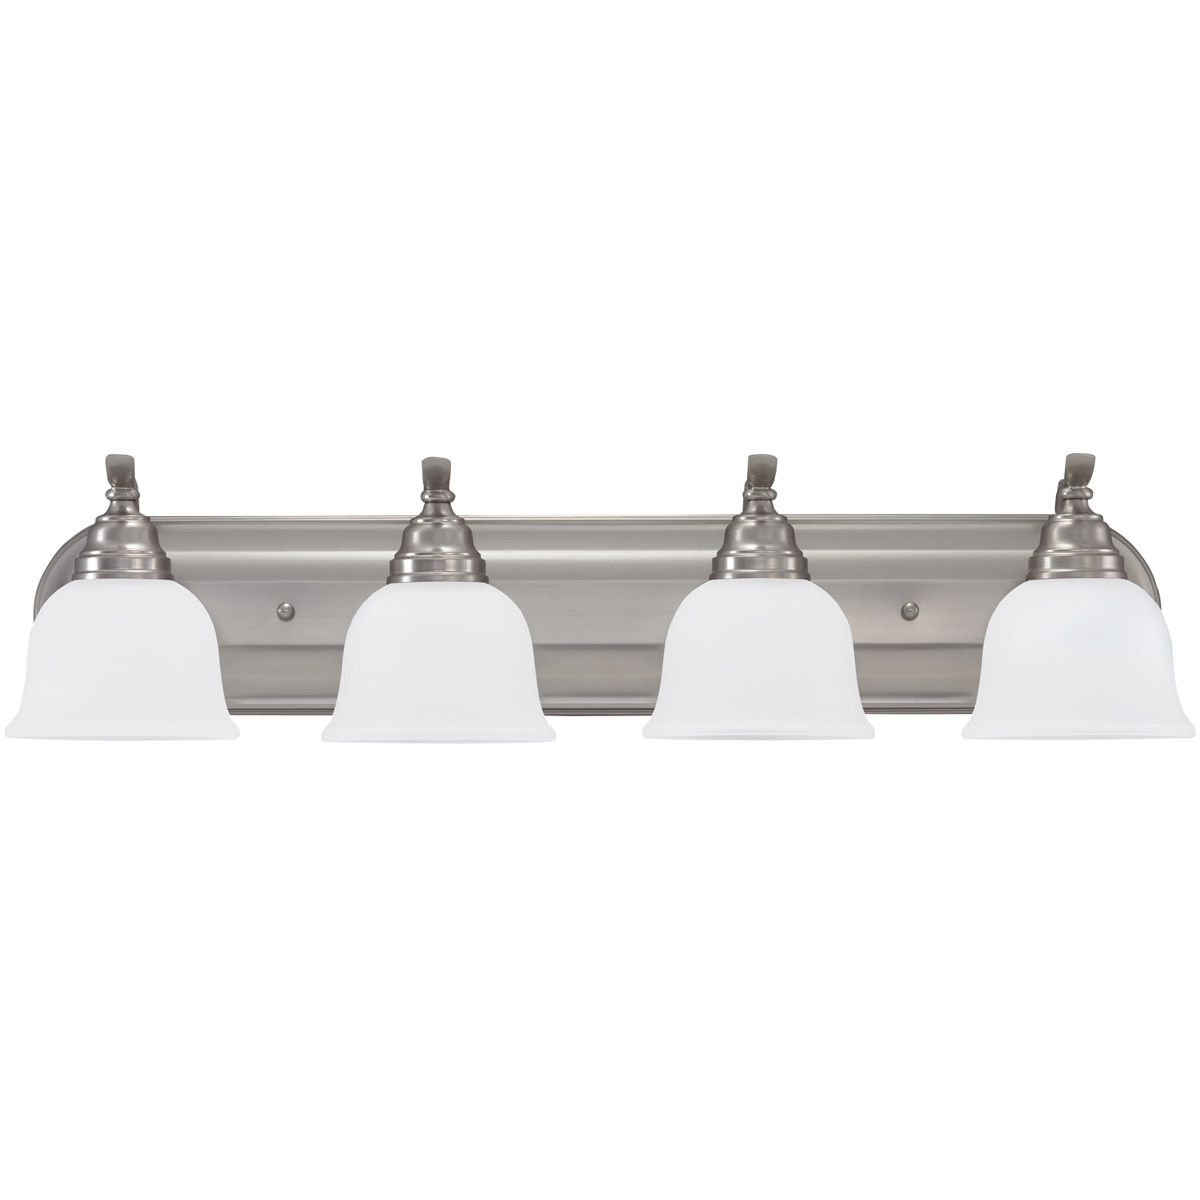 Sea Gull Lighting Wheaton 4 Light Bath Vanity in Brushed Nickel 44628-962 photo